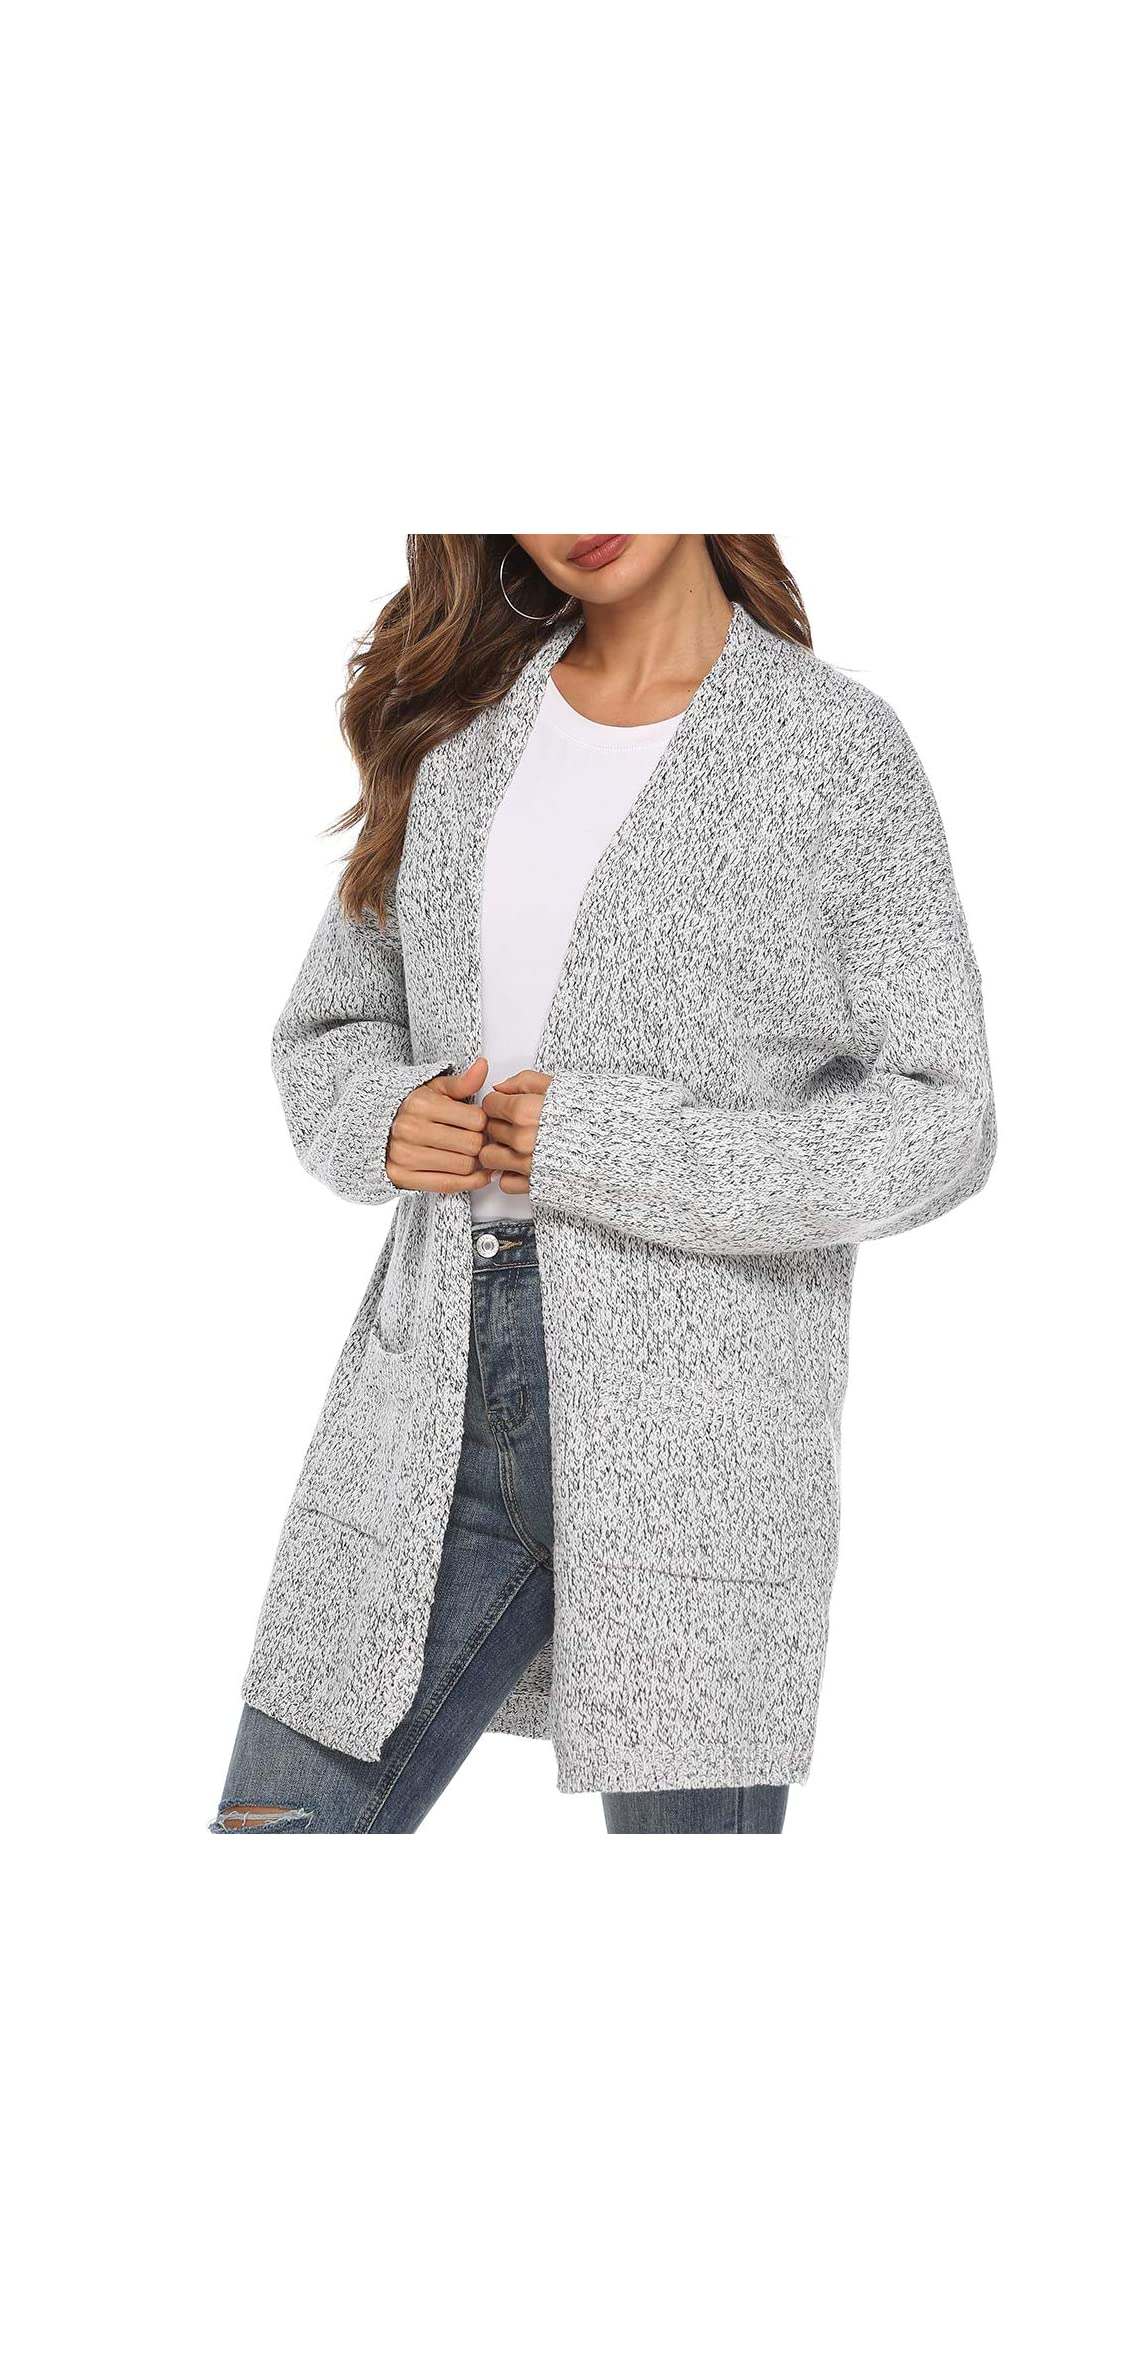 Women's Casual Sweater Cardigan Open Front Long Cable